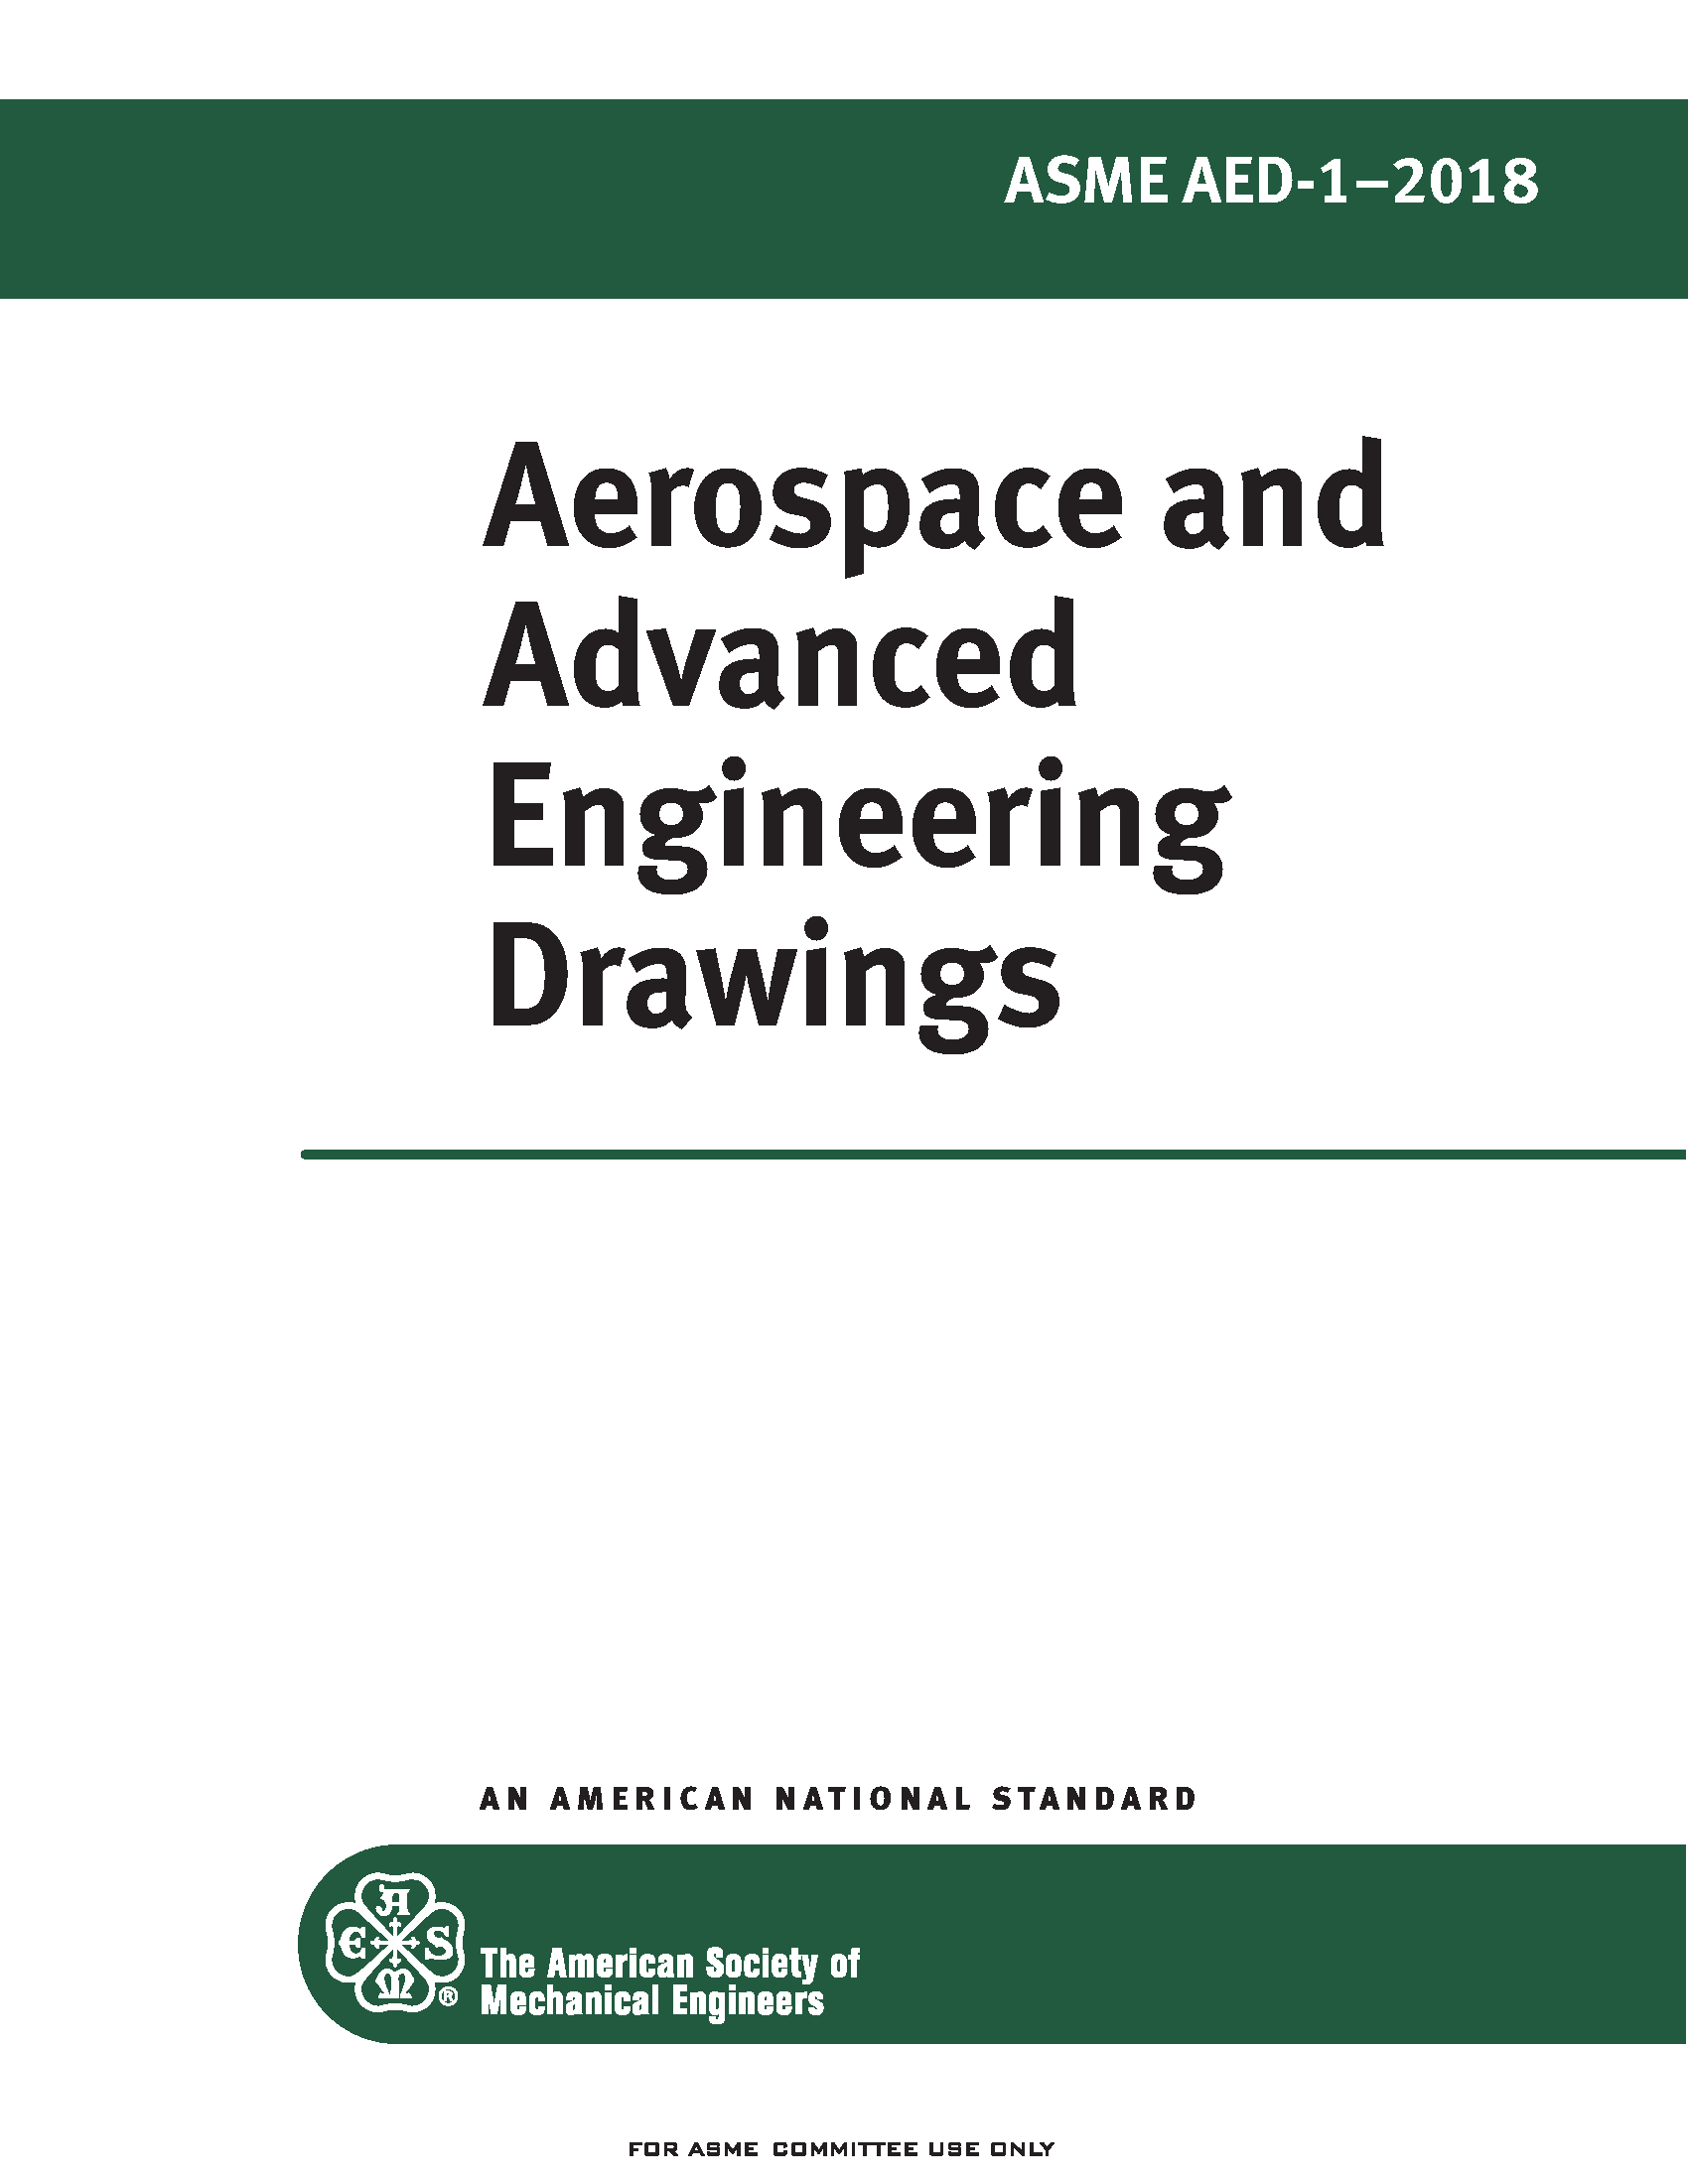 ASME AED-1 2018 Aerospace and Advanced Engineering Drawings Standard